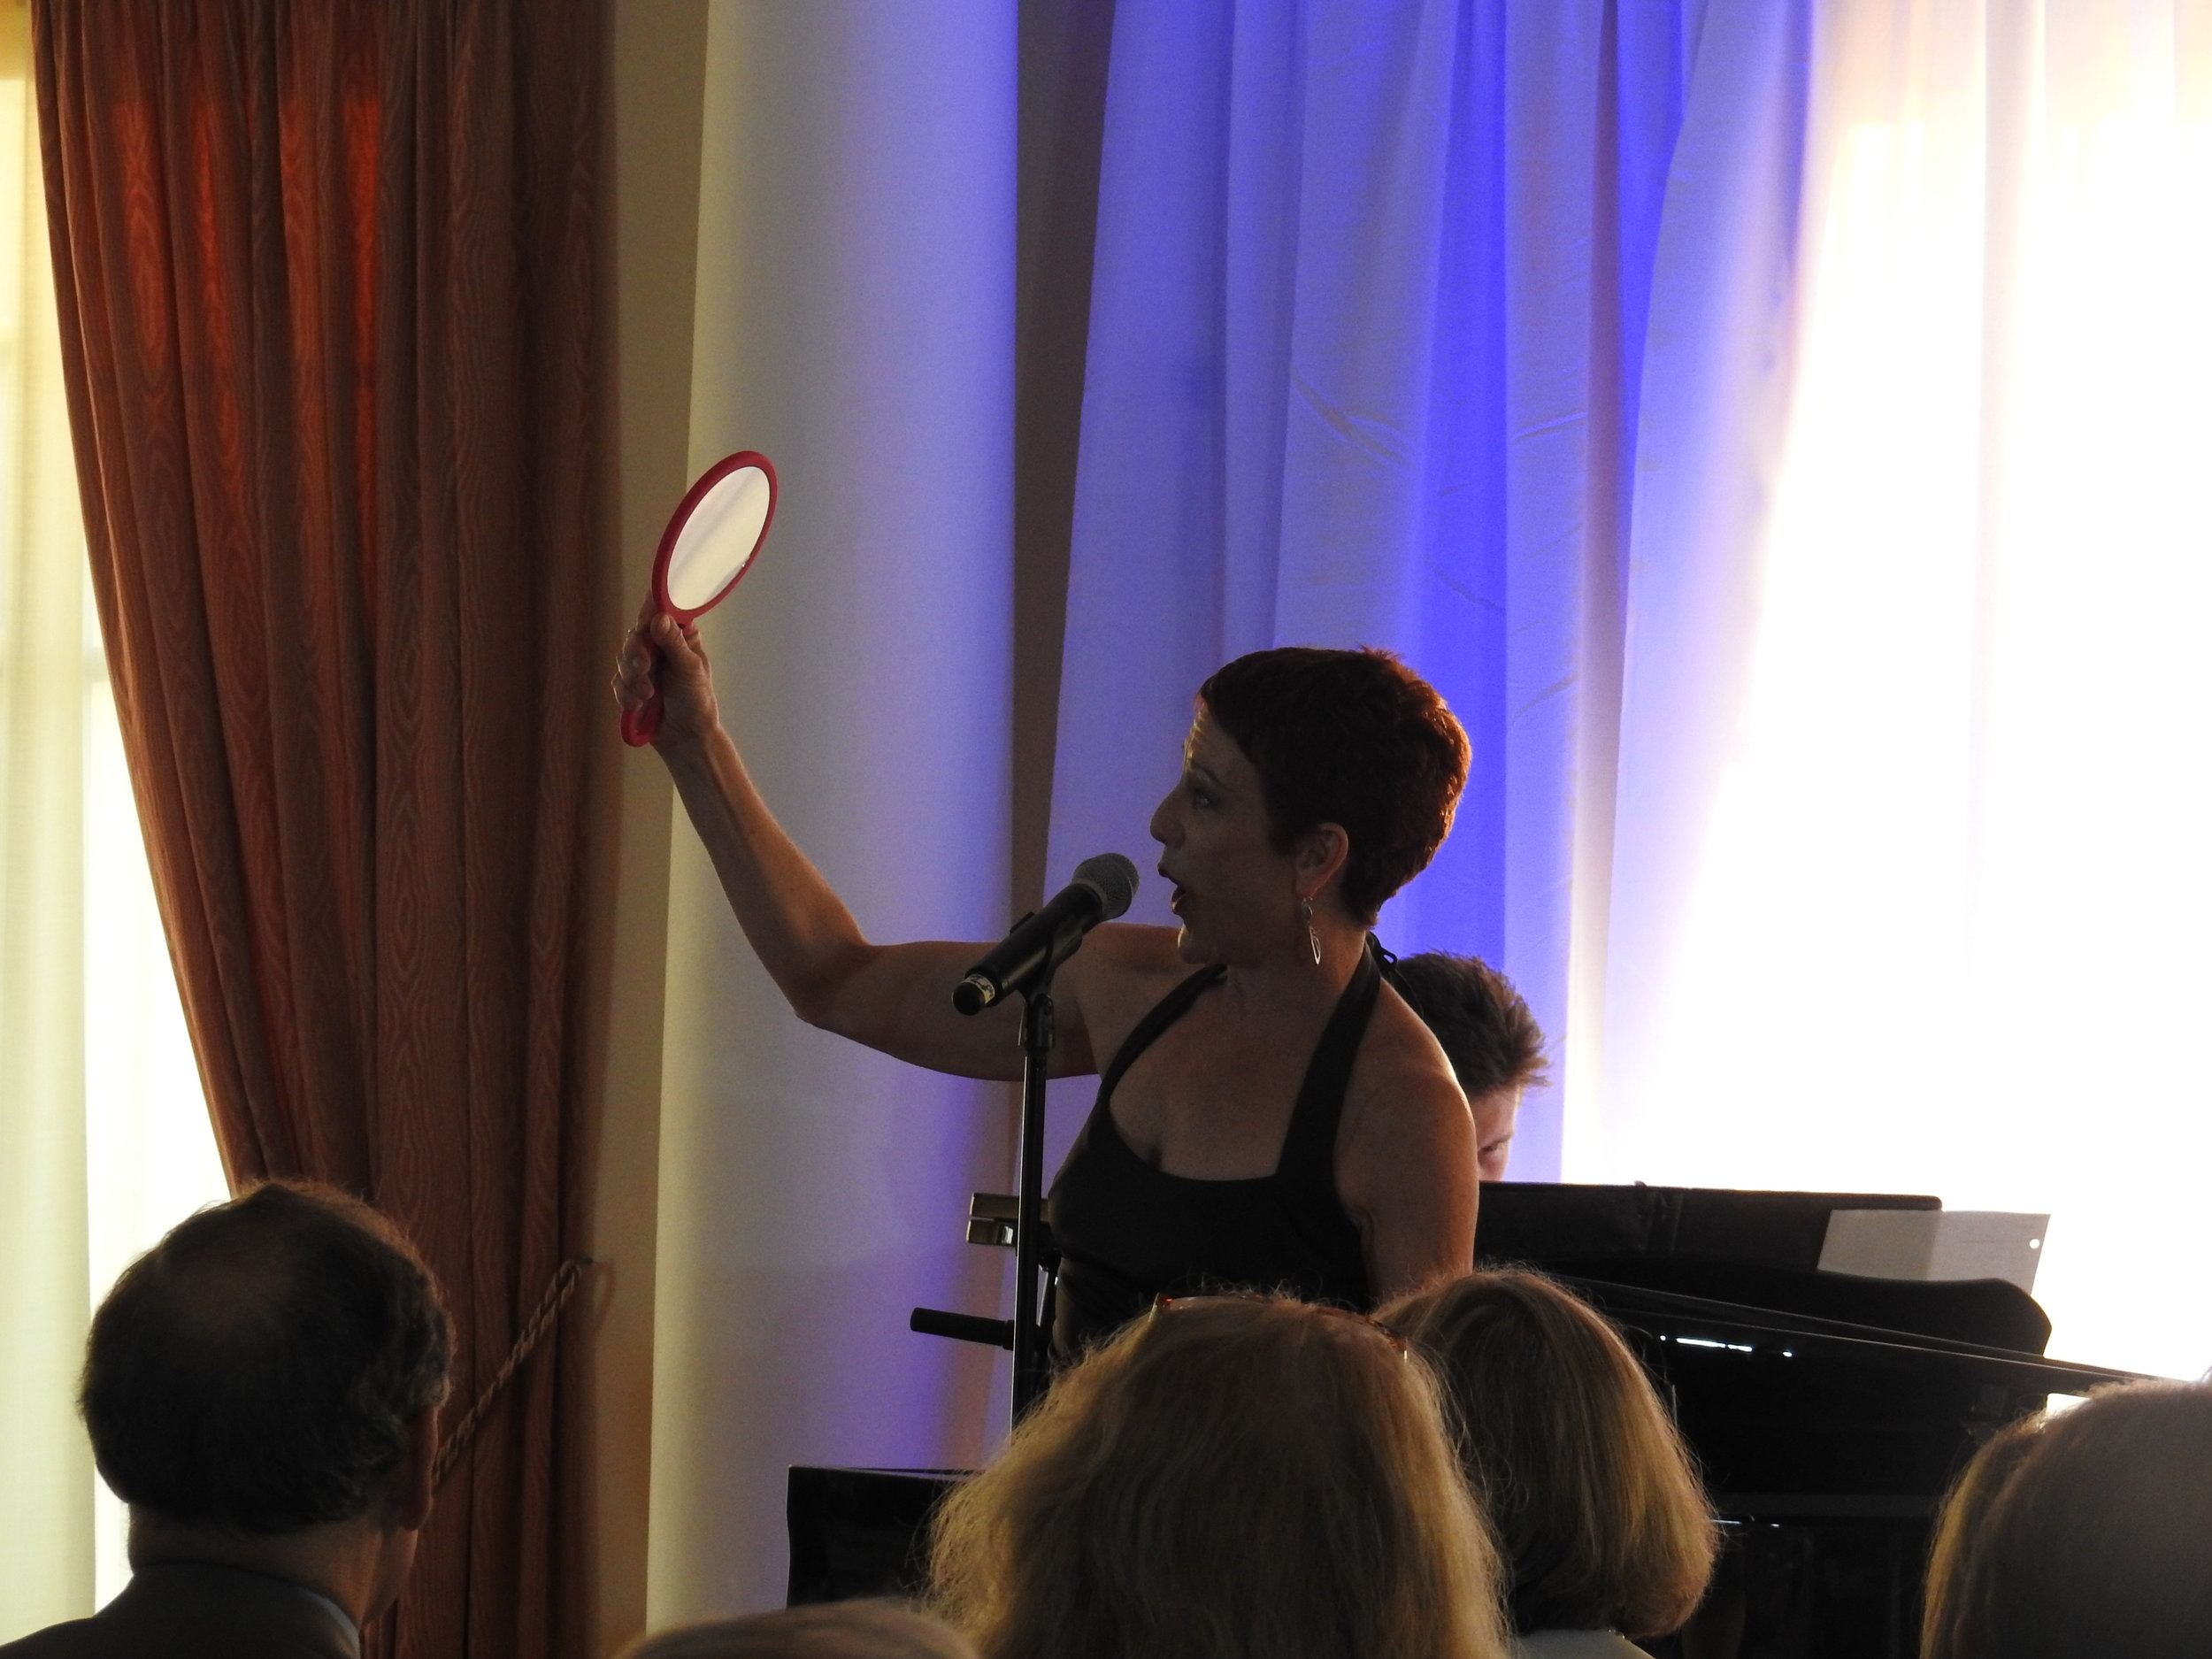 Unforgettable Performance - Broadway superstar Lisa Vroman wowed a packed house with an unforgettable performance!